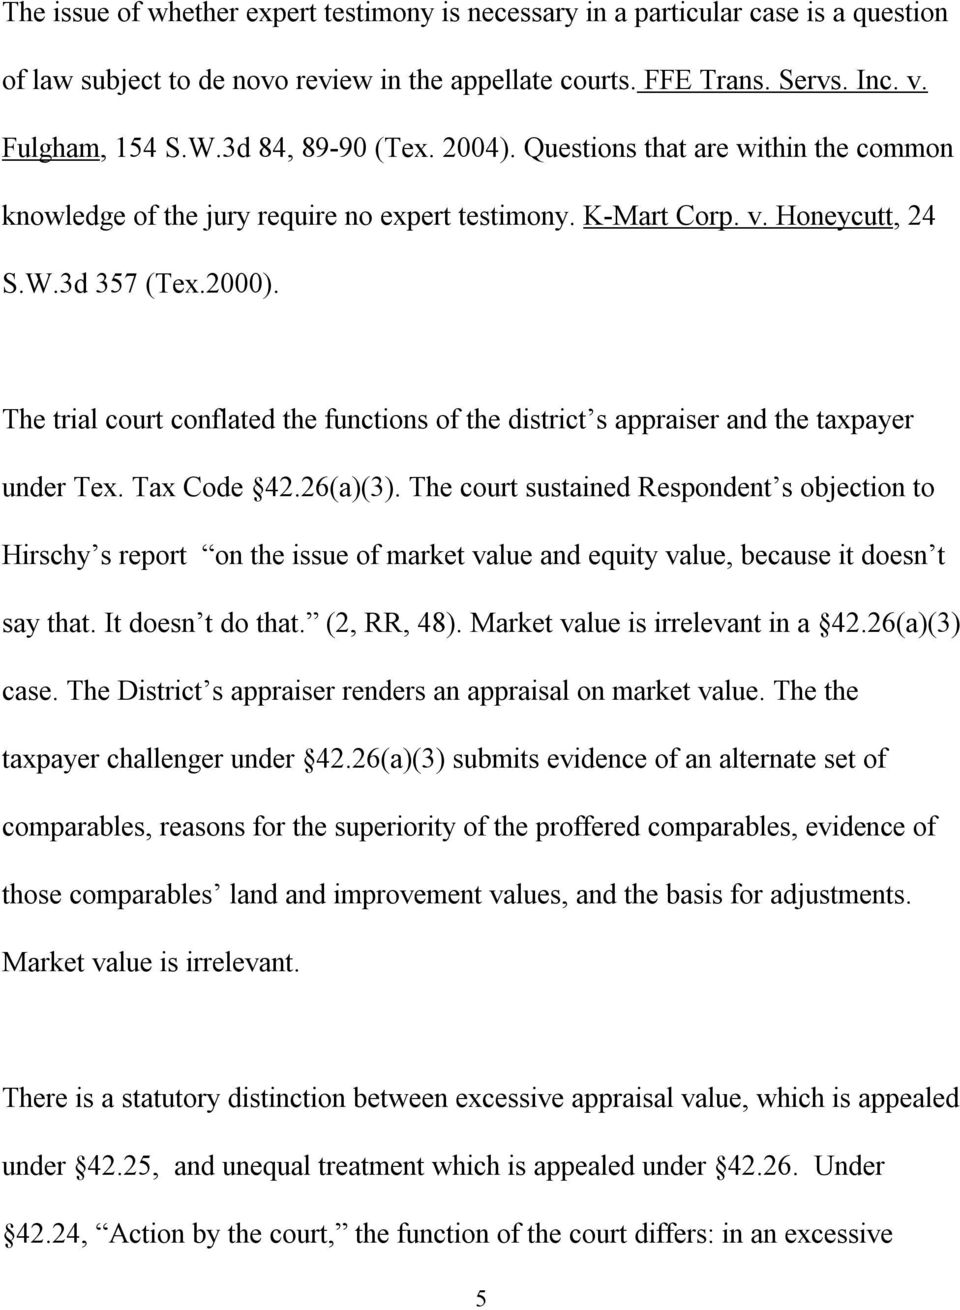 The trial court conflated the functions of the district s appraiser and the taxpayer under Tex. Tax Code 42.26(a)(3).